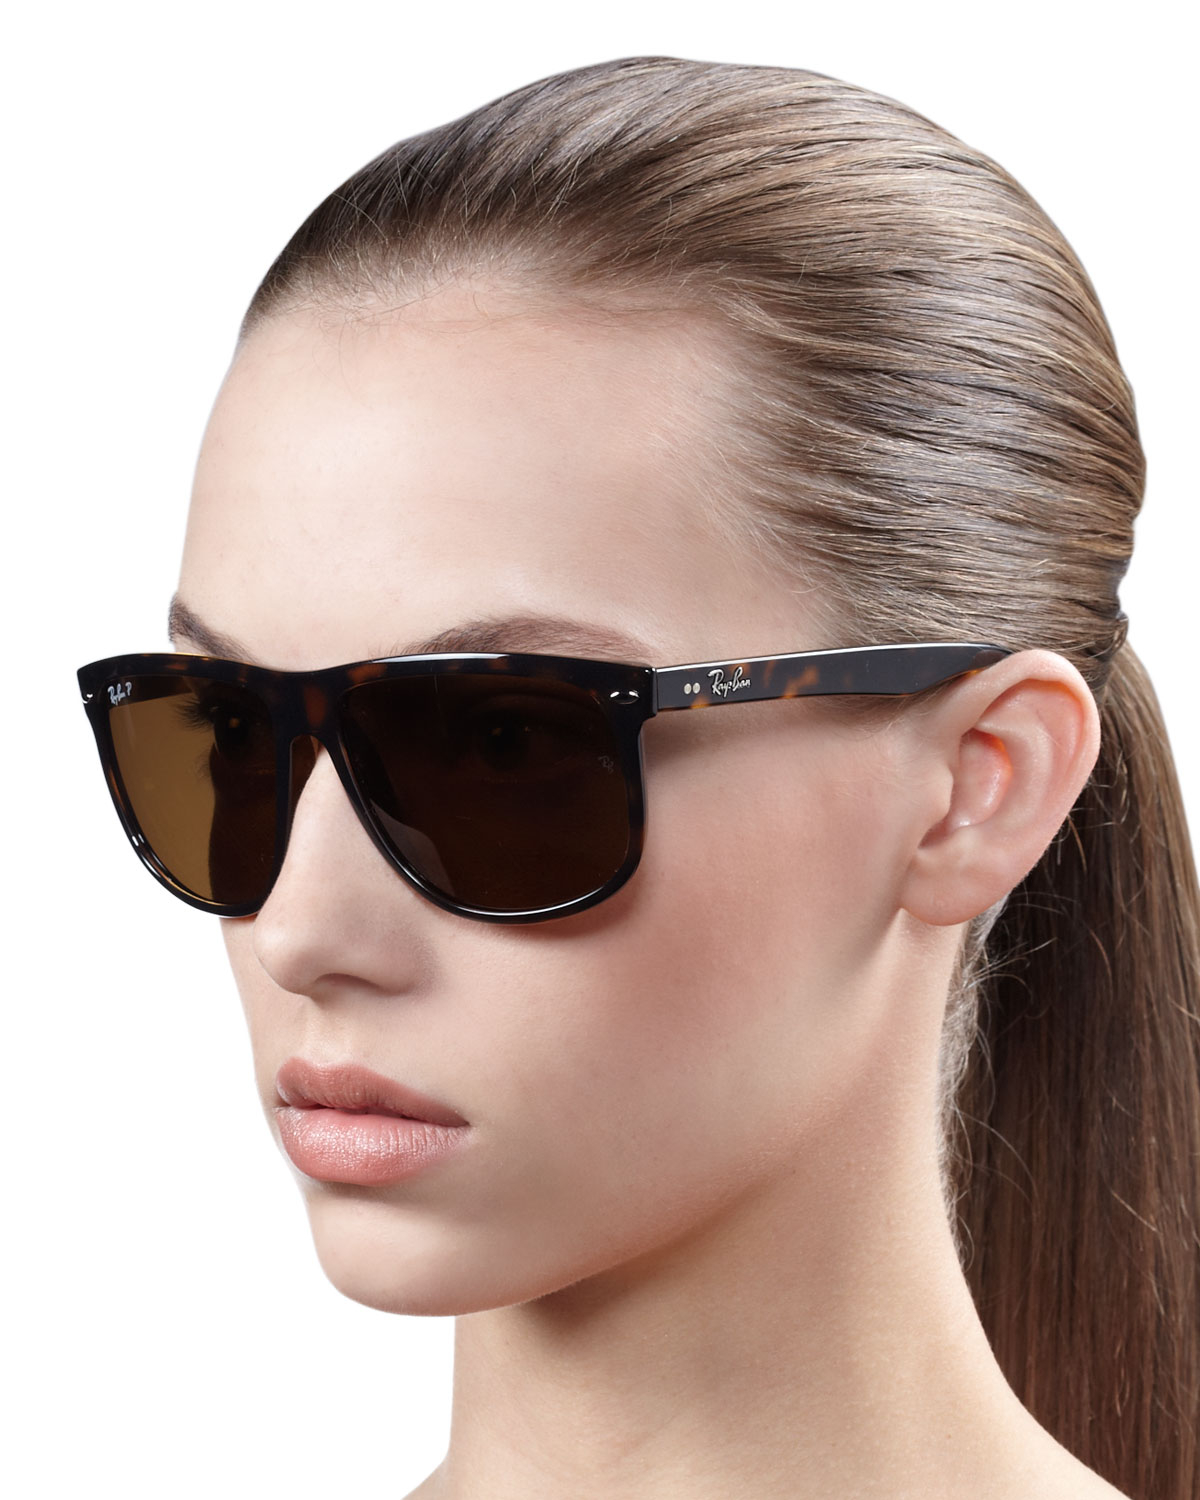 Oversized Wayfarer Sunglasses  ray ban oversize polarized wayfarer sunglasses in black lyst